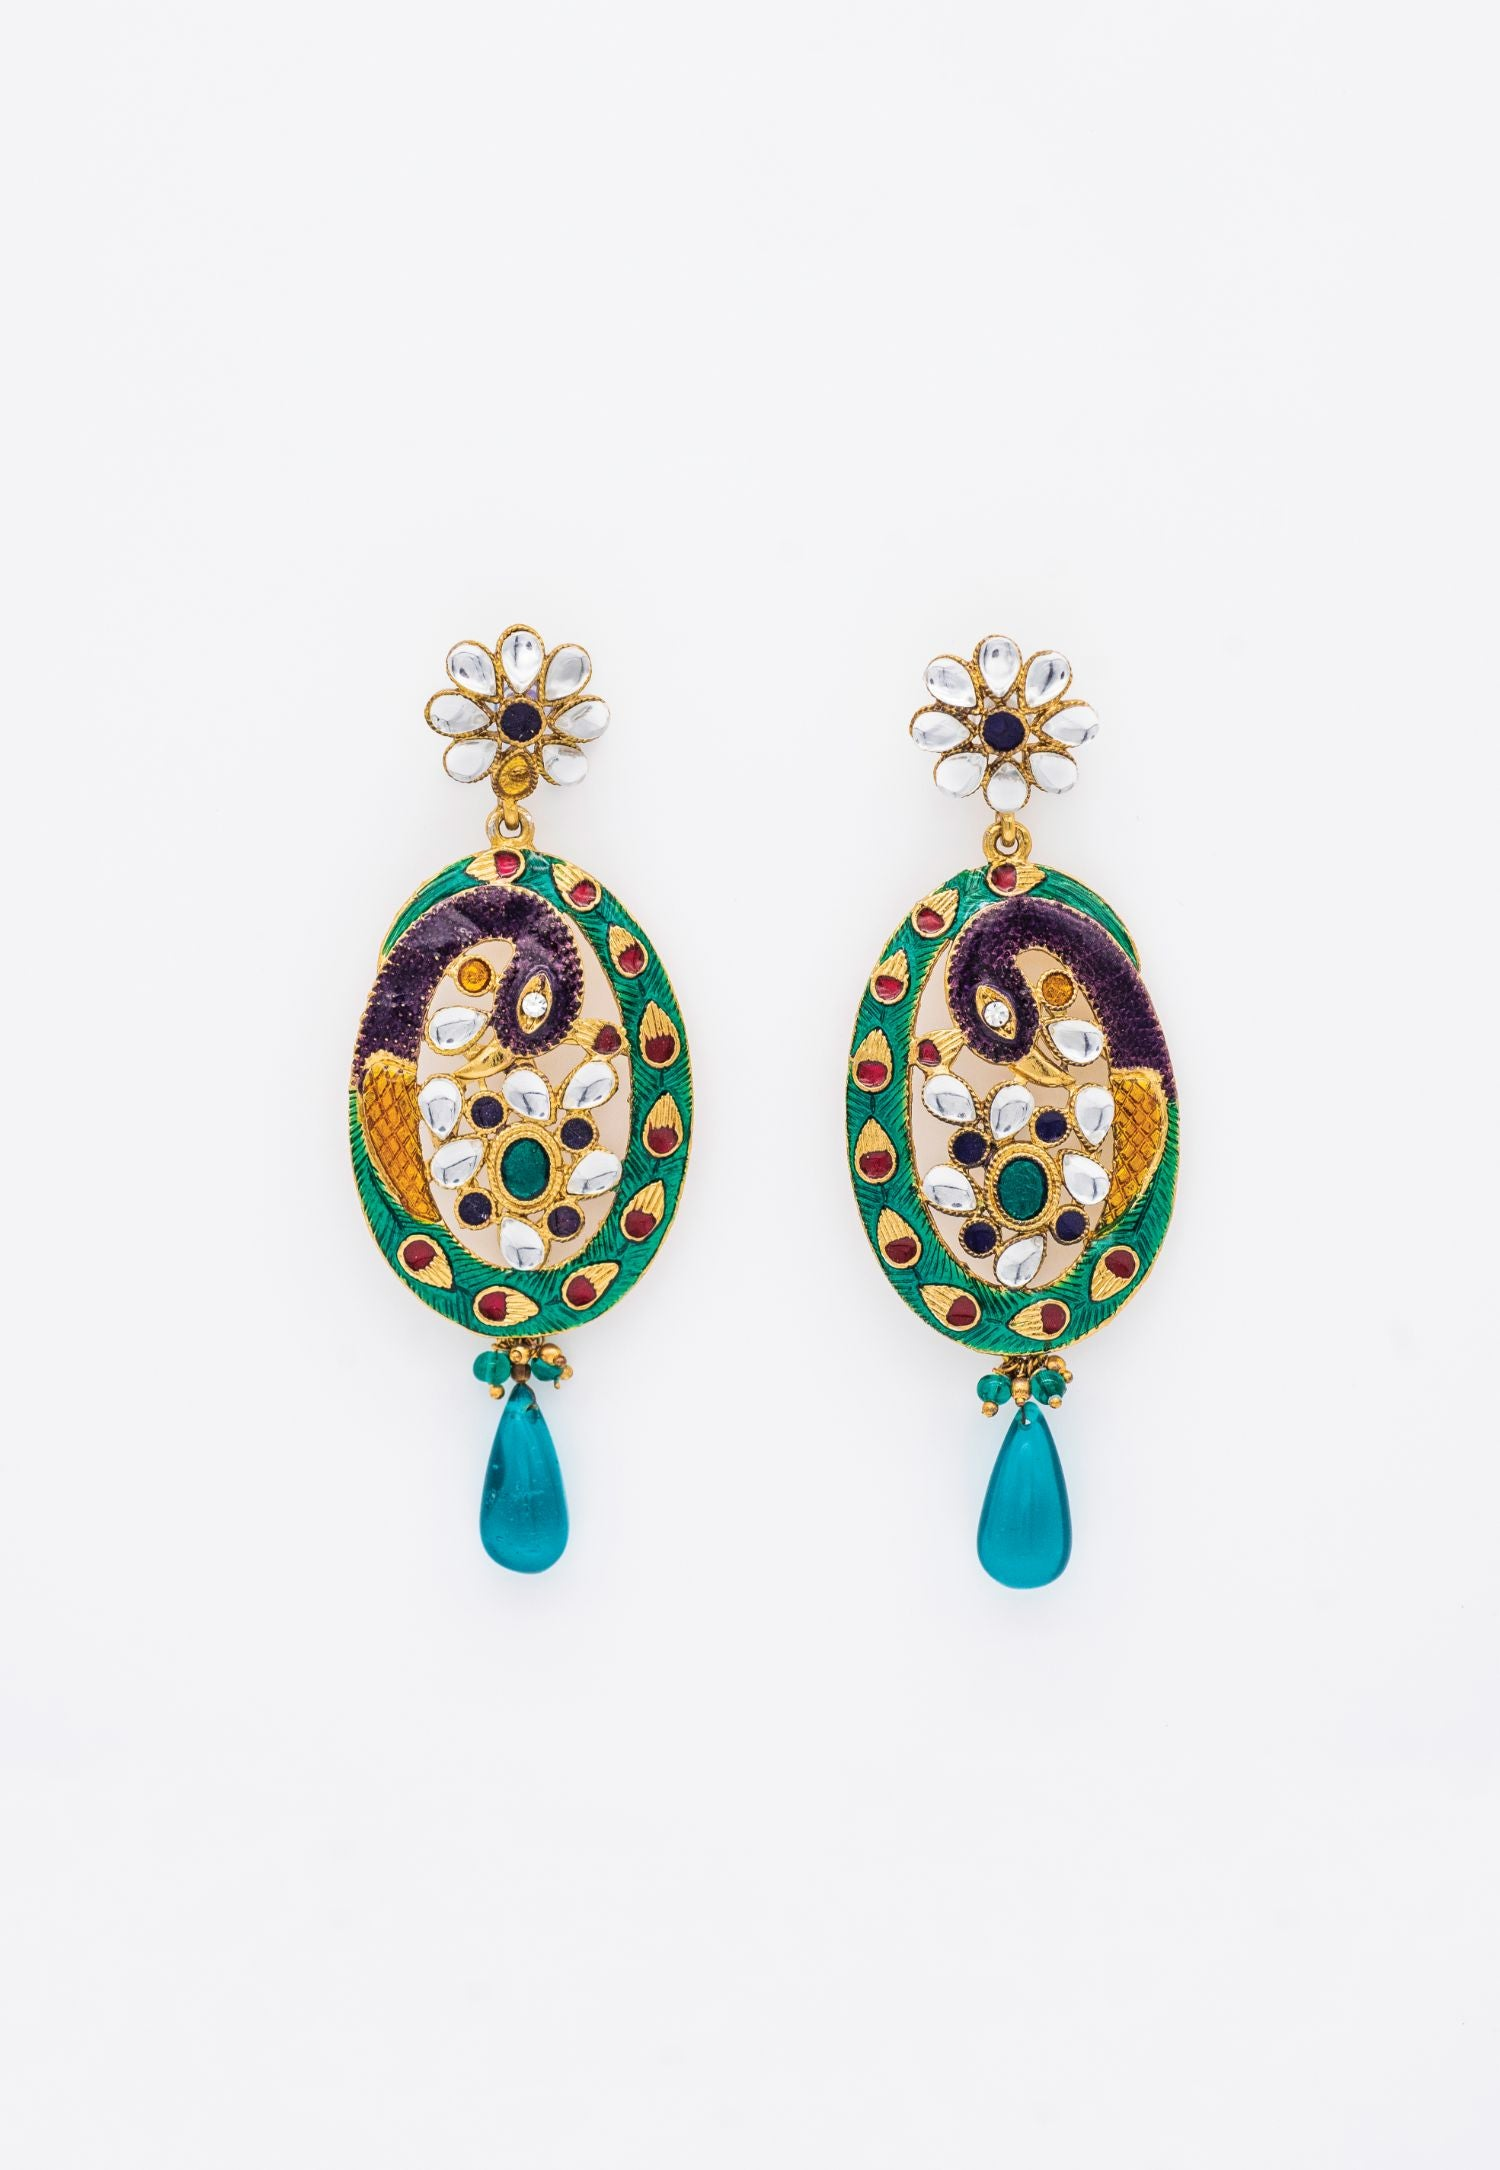 LACQUERED EARRINGS WITH TEAL, NAVY, AQUA, RED AND GOLD ENAMEL